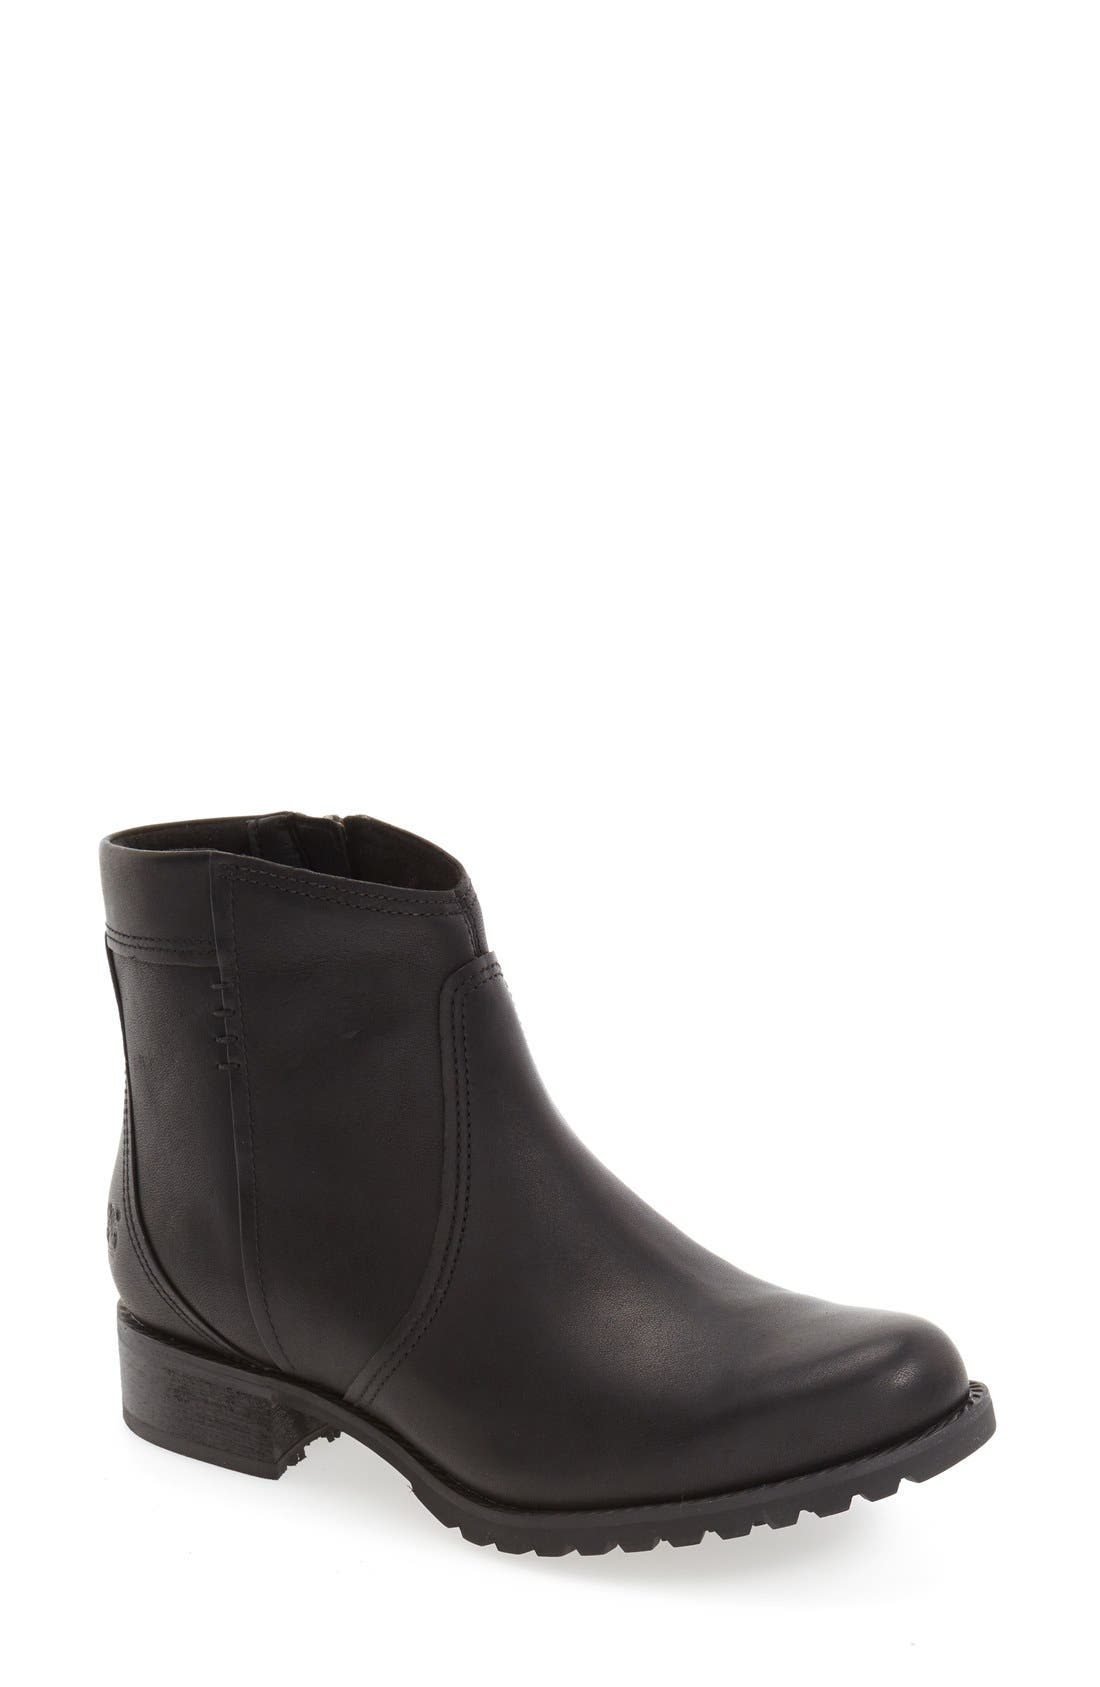 TIMBERLAND Banfield Waterproof Bootie